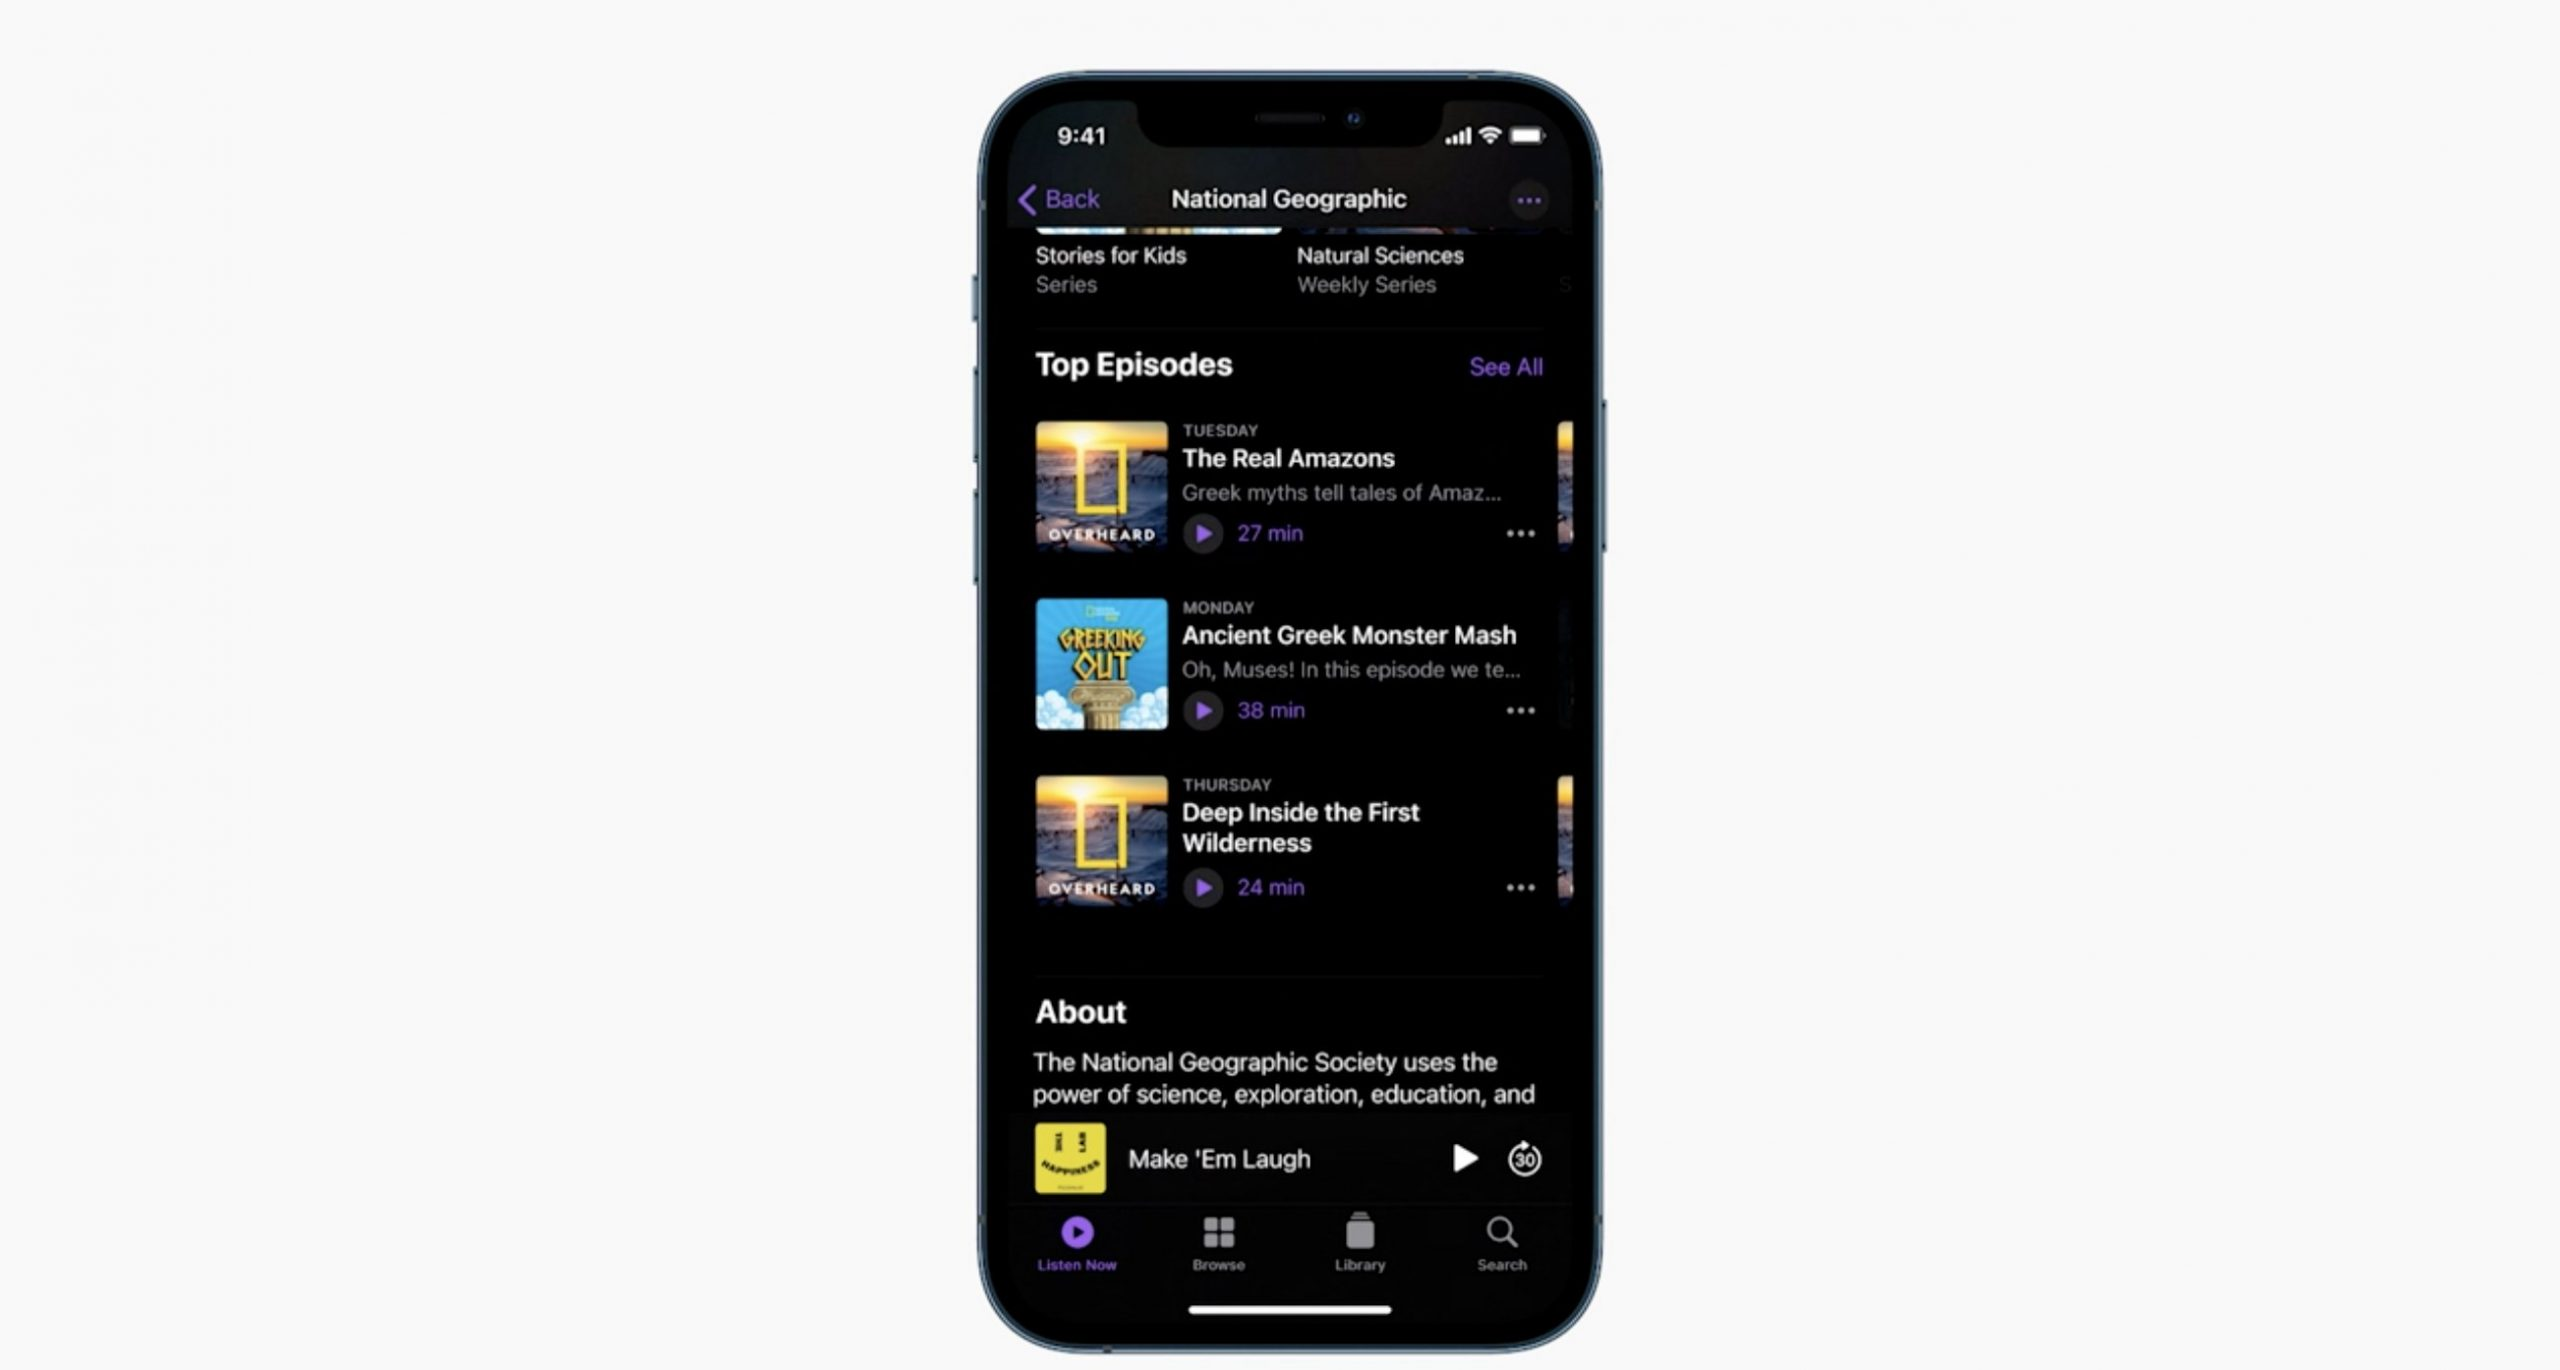 10:34 - Apple Podcast Launched By Apple With New Features